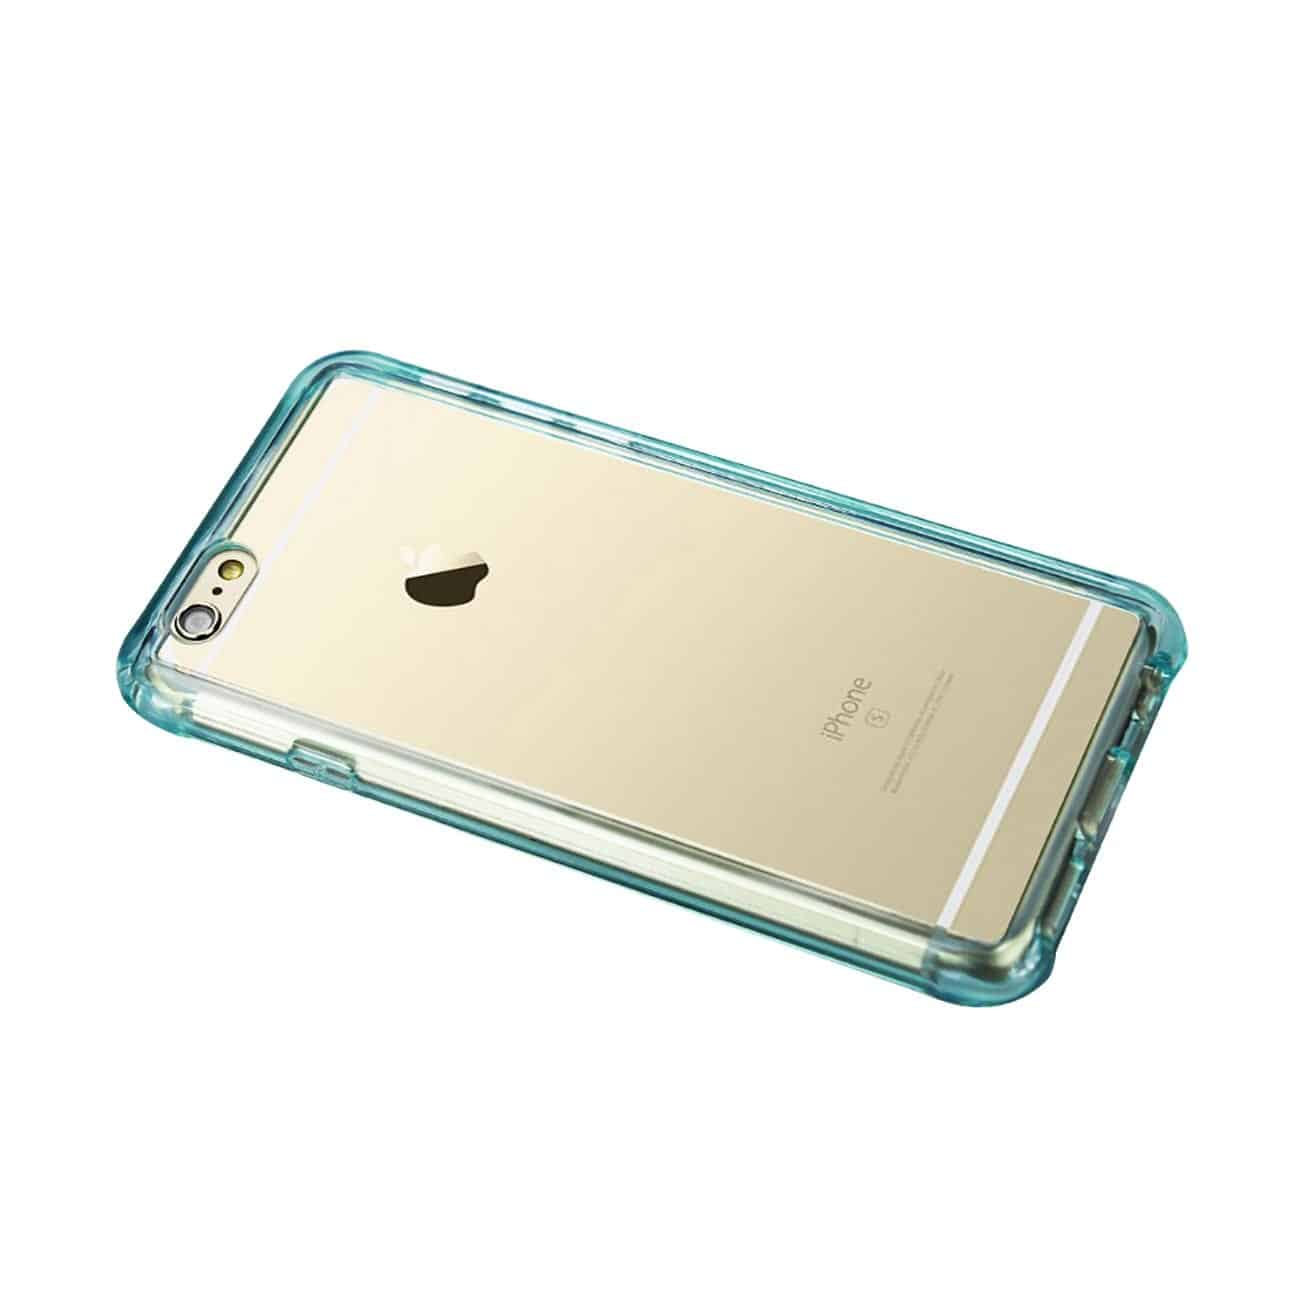 IPHONE 6 PLUS MIRROR EFFECT CASE WITH AIR CUSHION PROTECTION IN CLEAR NAVY